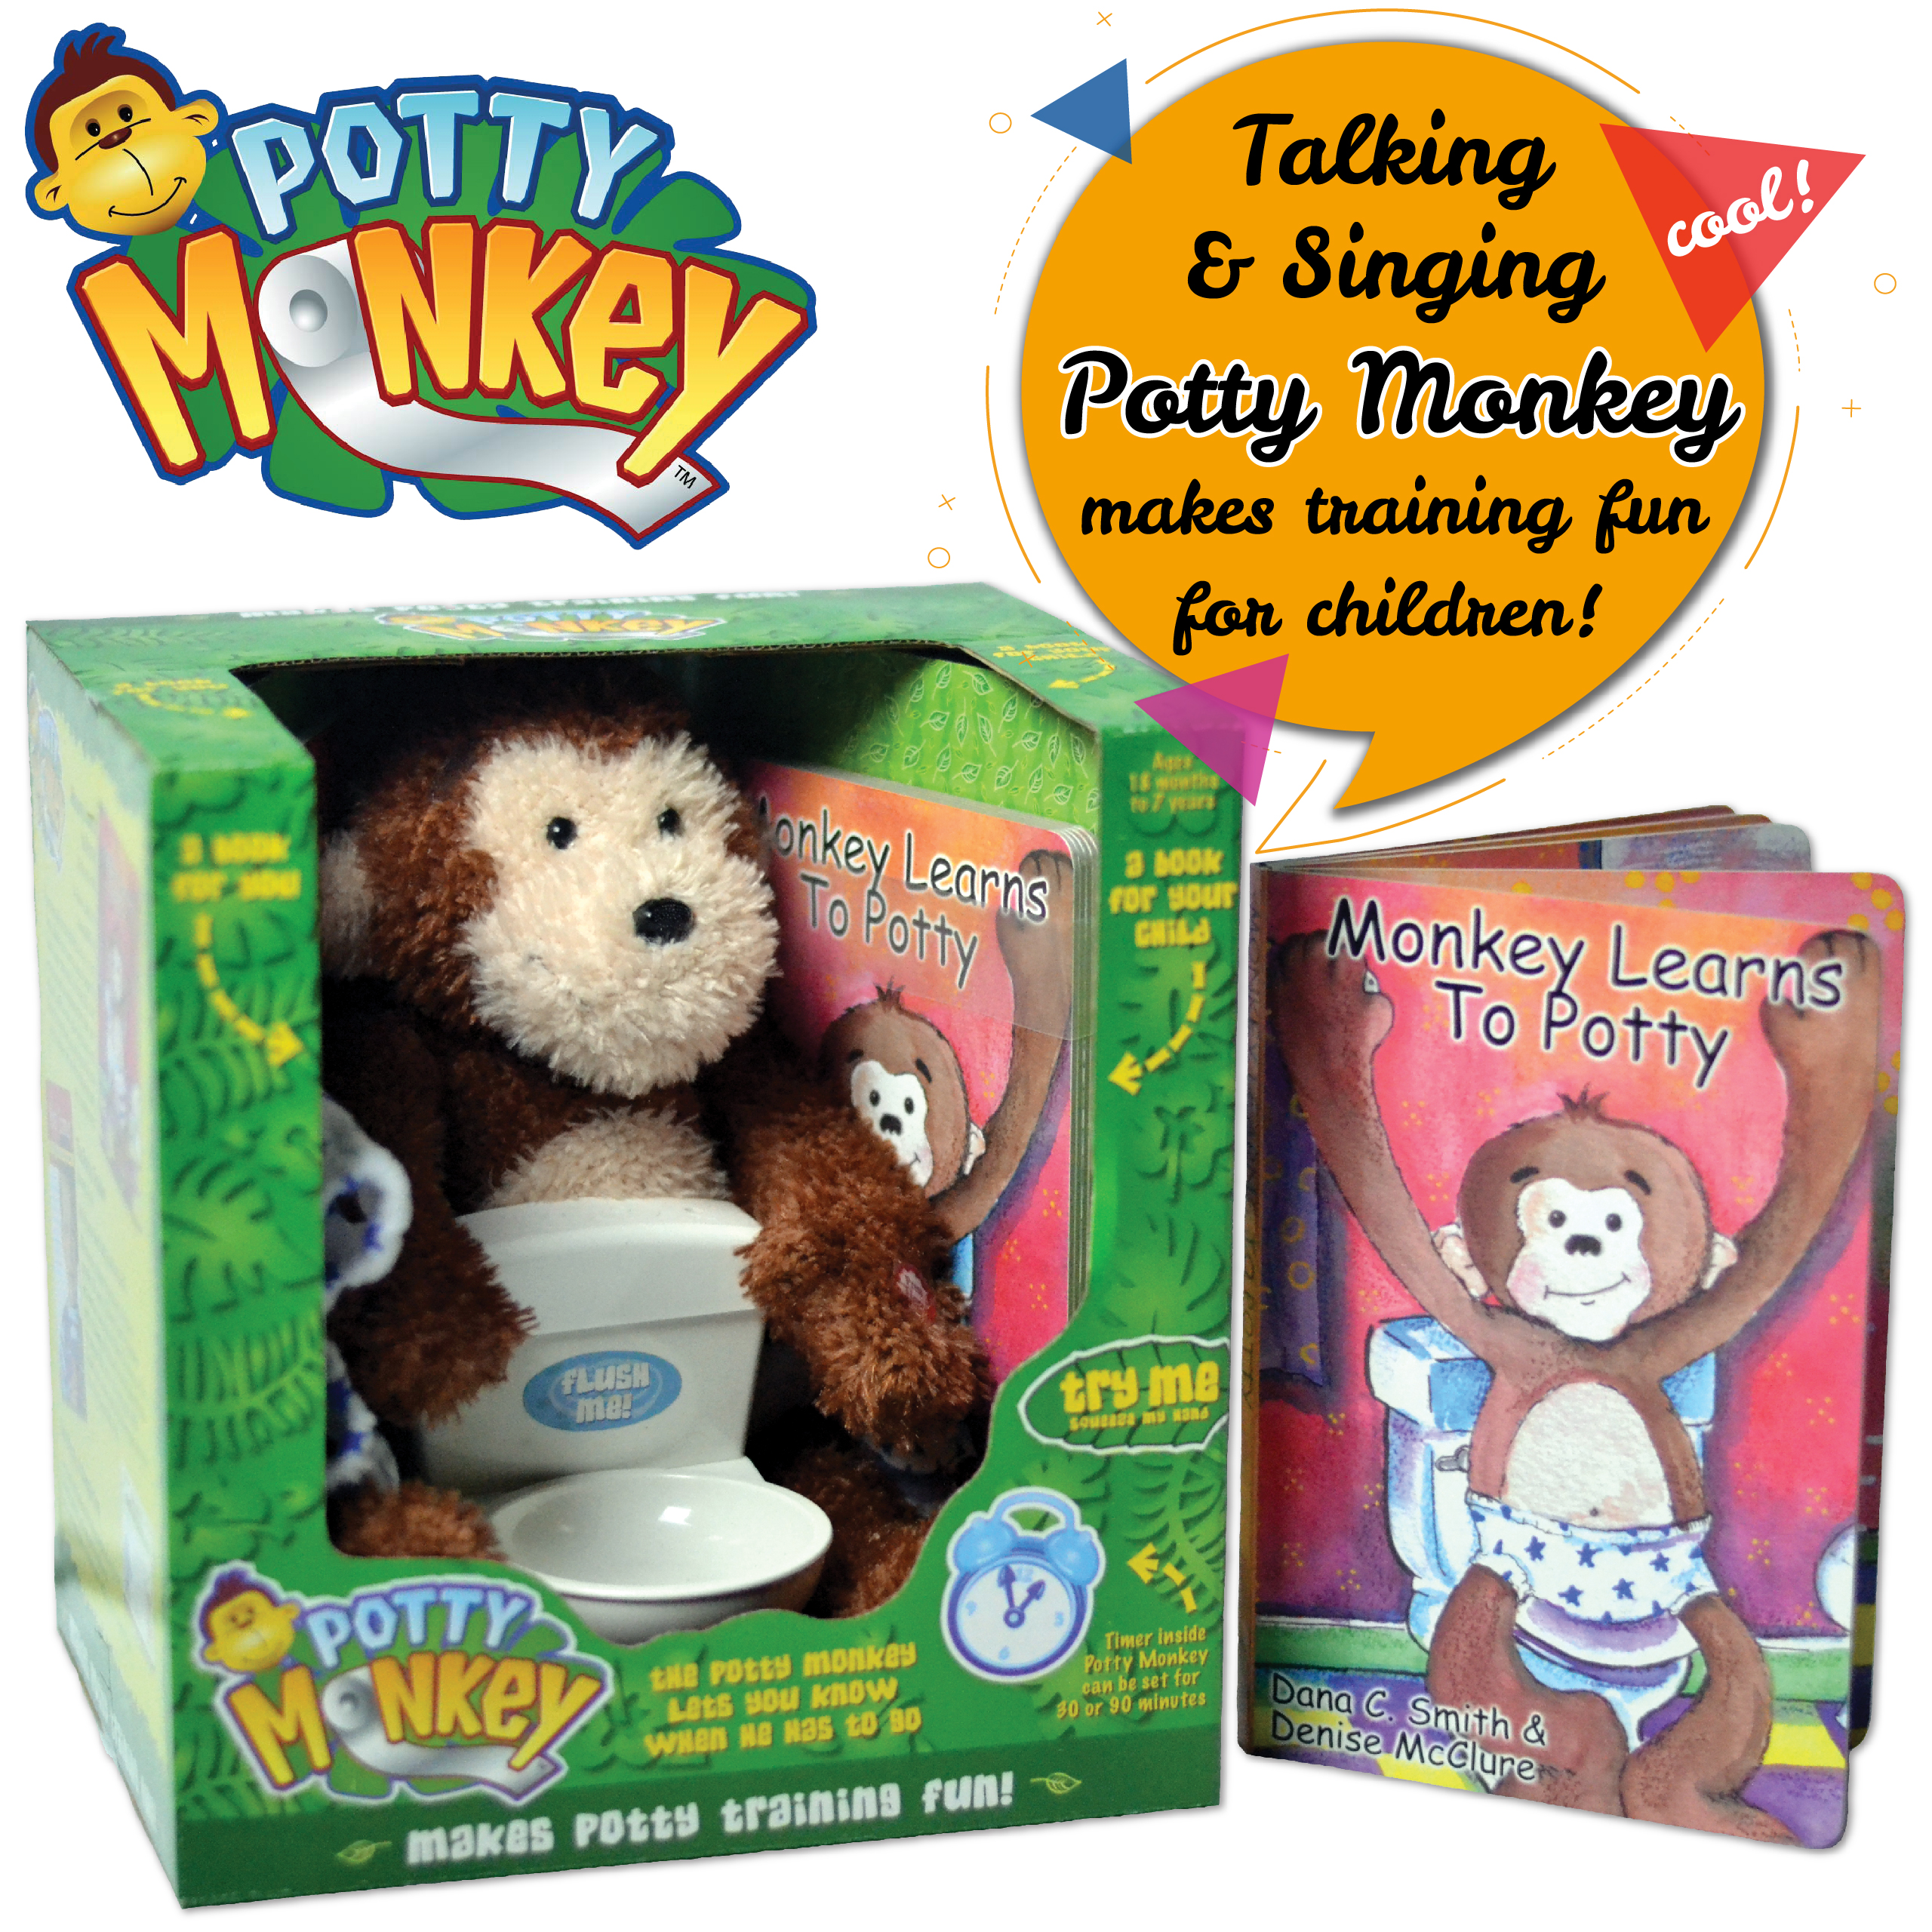 Potty Monkey plush talking, singing monkey with toilet, monkey underwear, and two educational books for successful potty training.